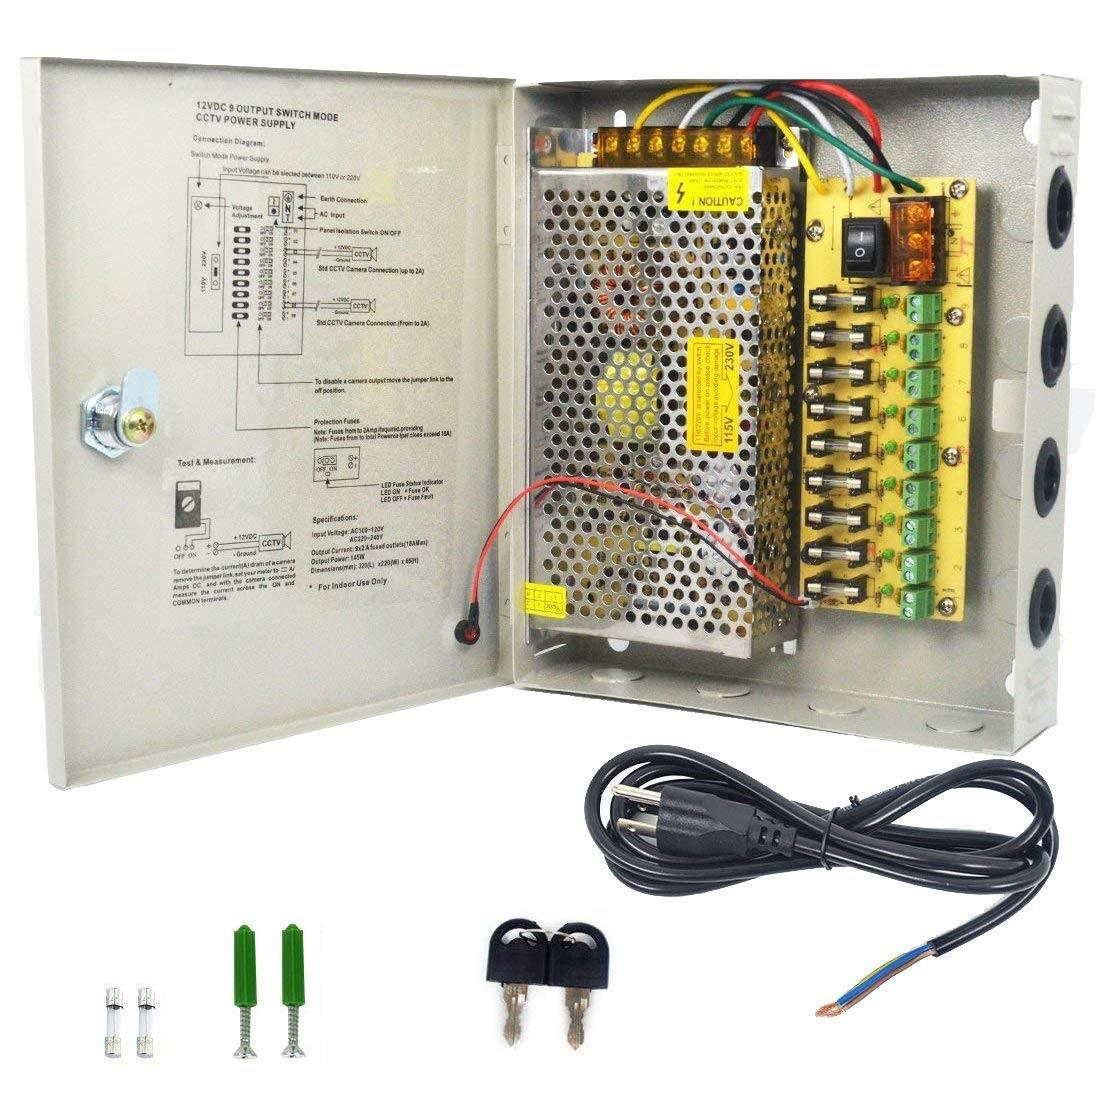 CCTV 9 Channel Fused Centralized Distributed Power Supply With Box 9CH 12V 10A